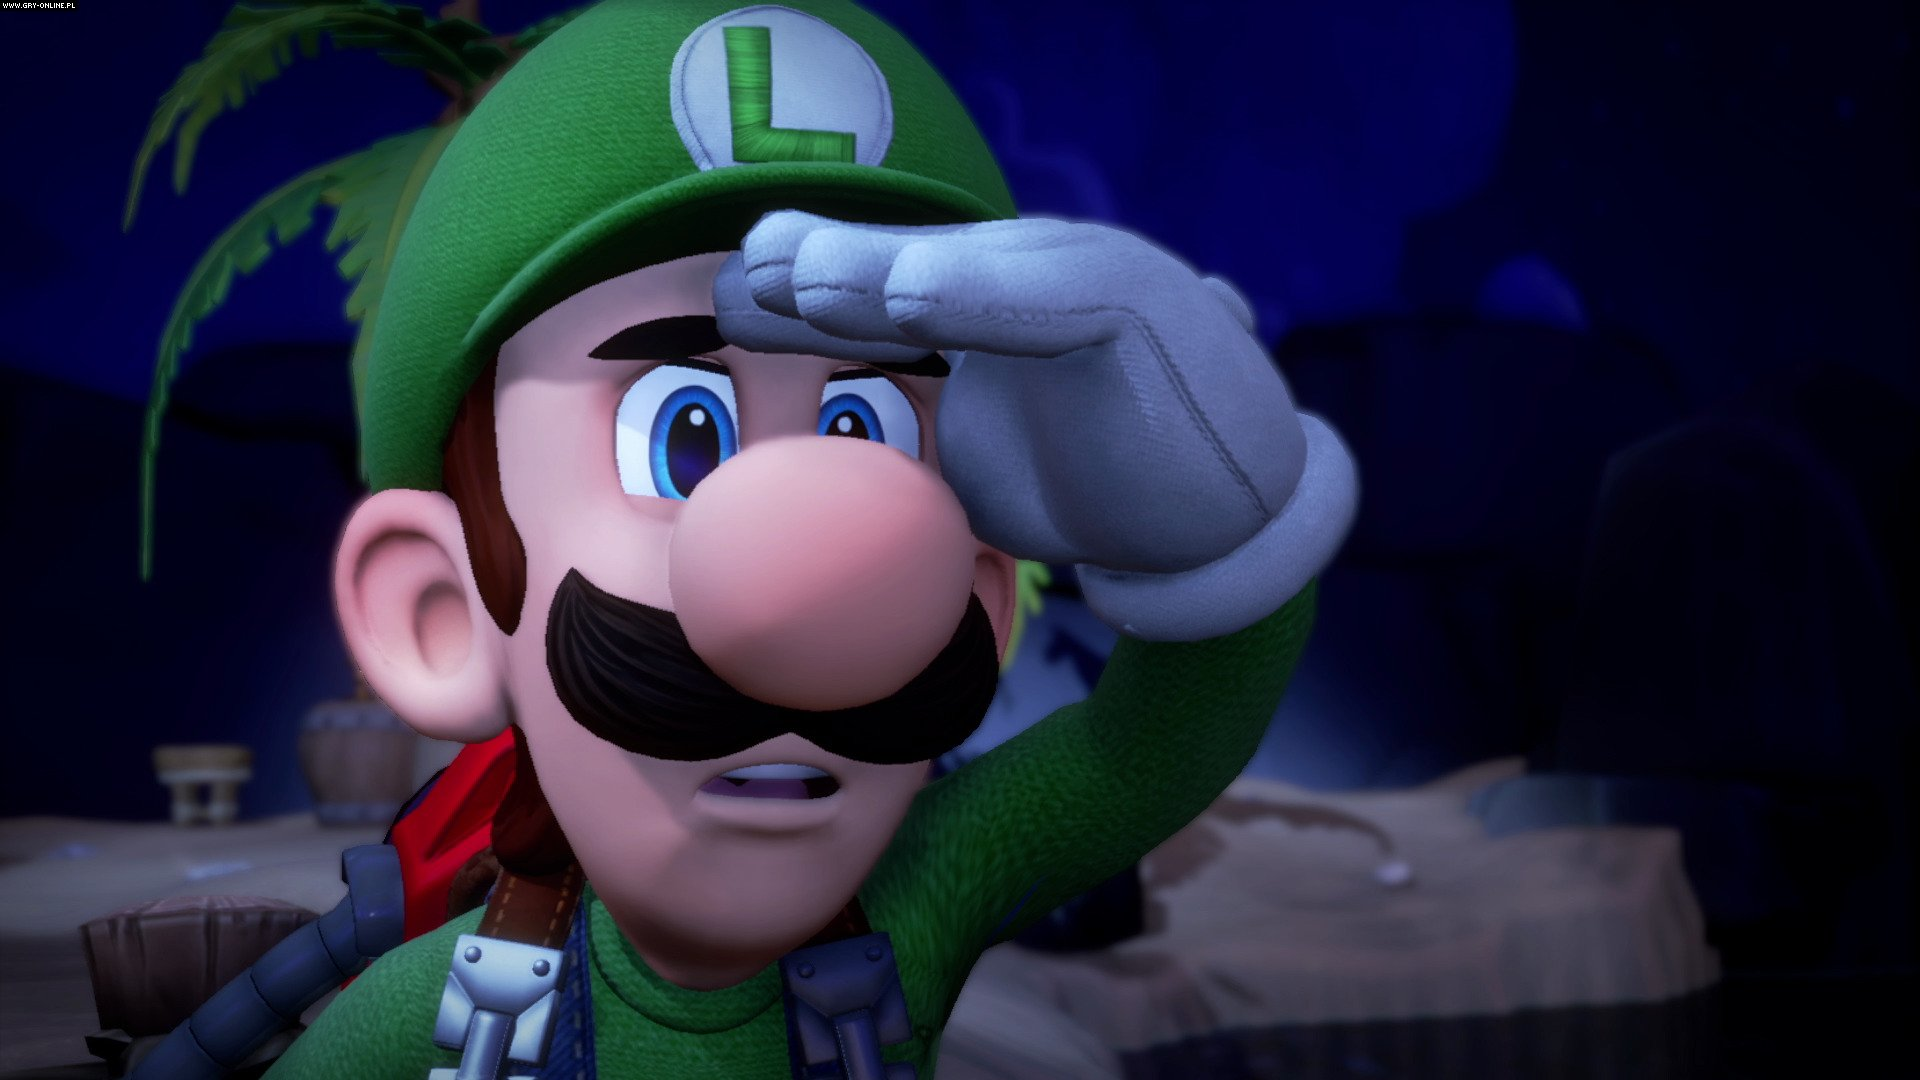 Luigi's Mansion 3 Switch Gry Screen 2/31, Nintendo